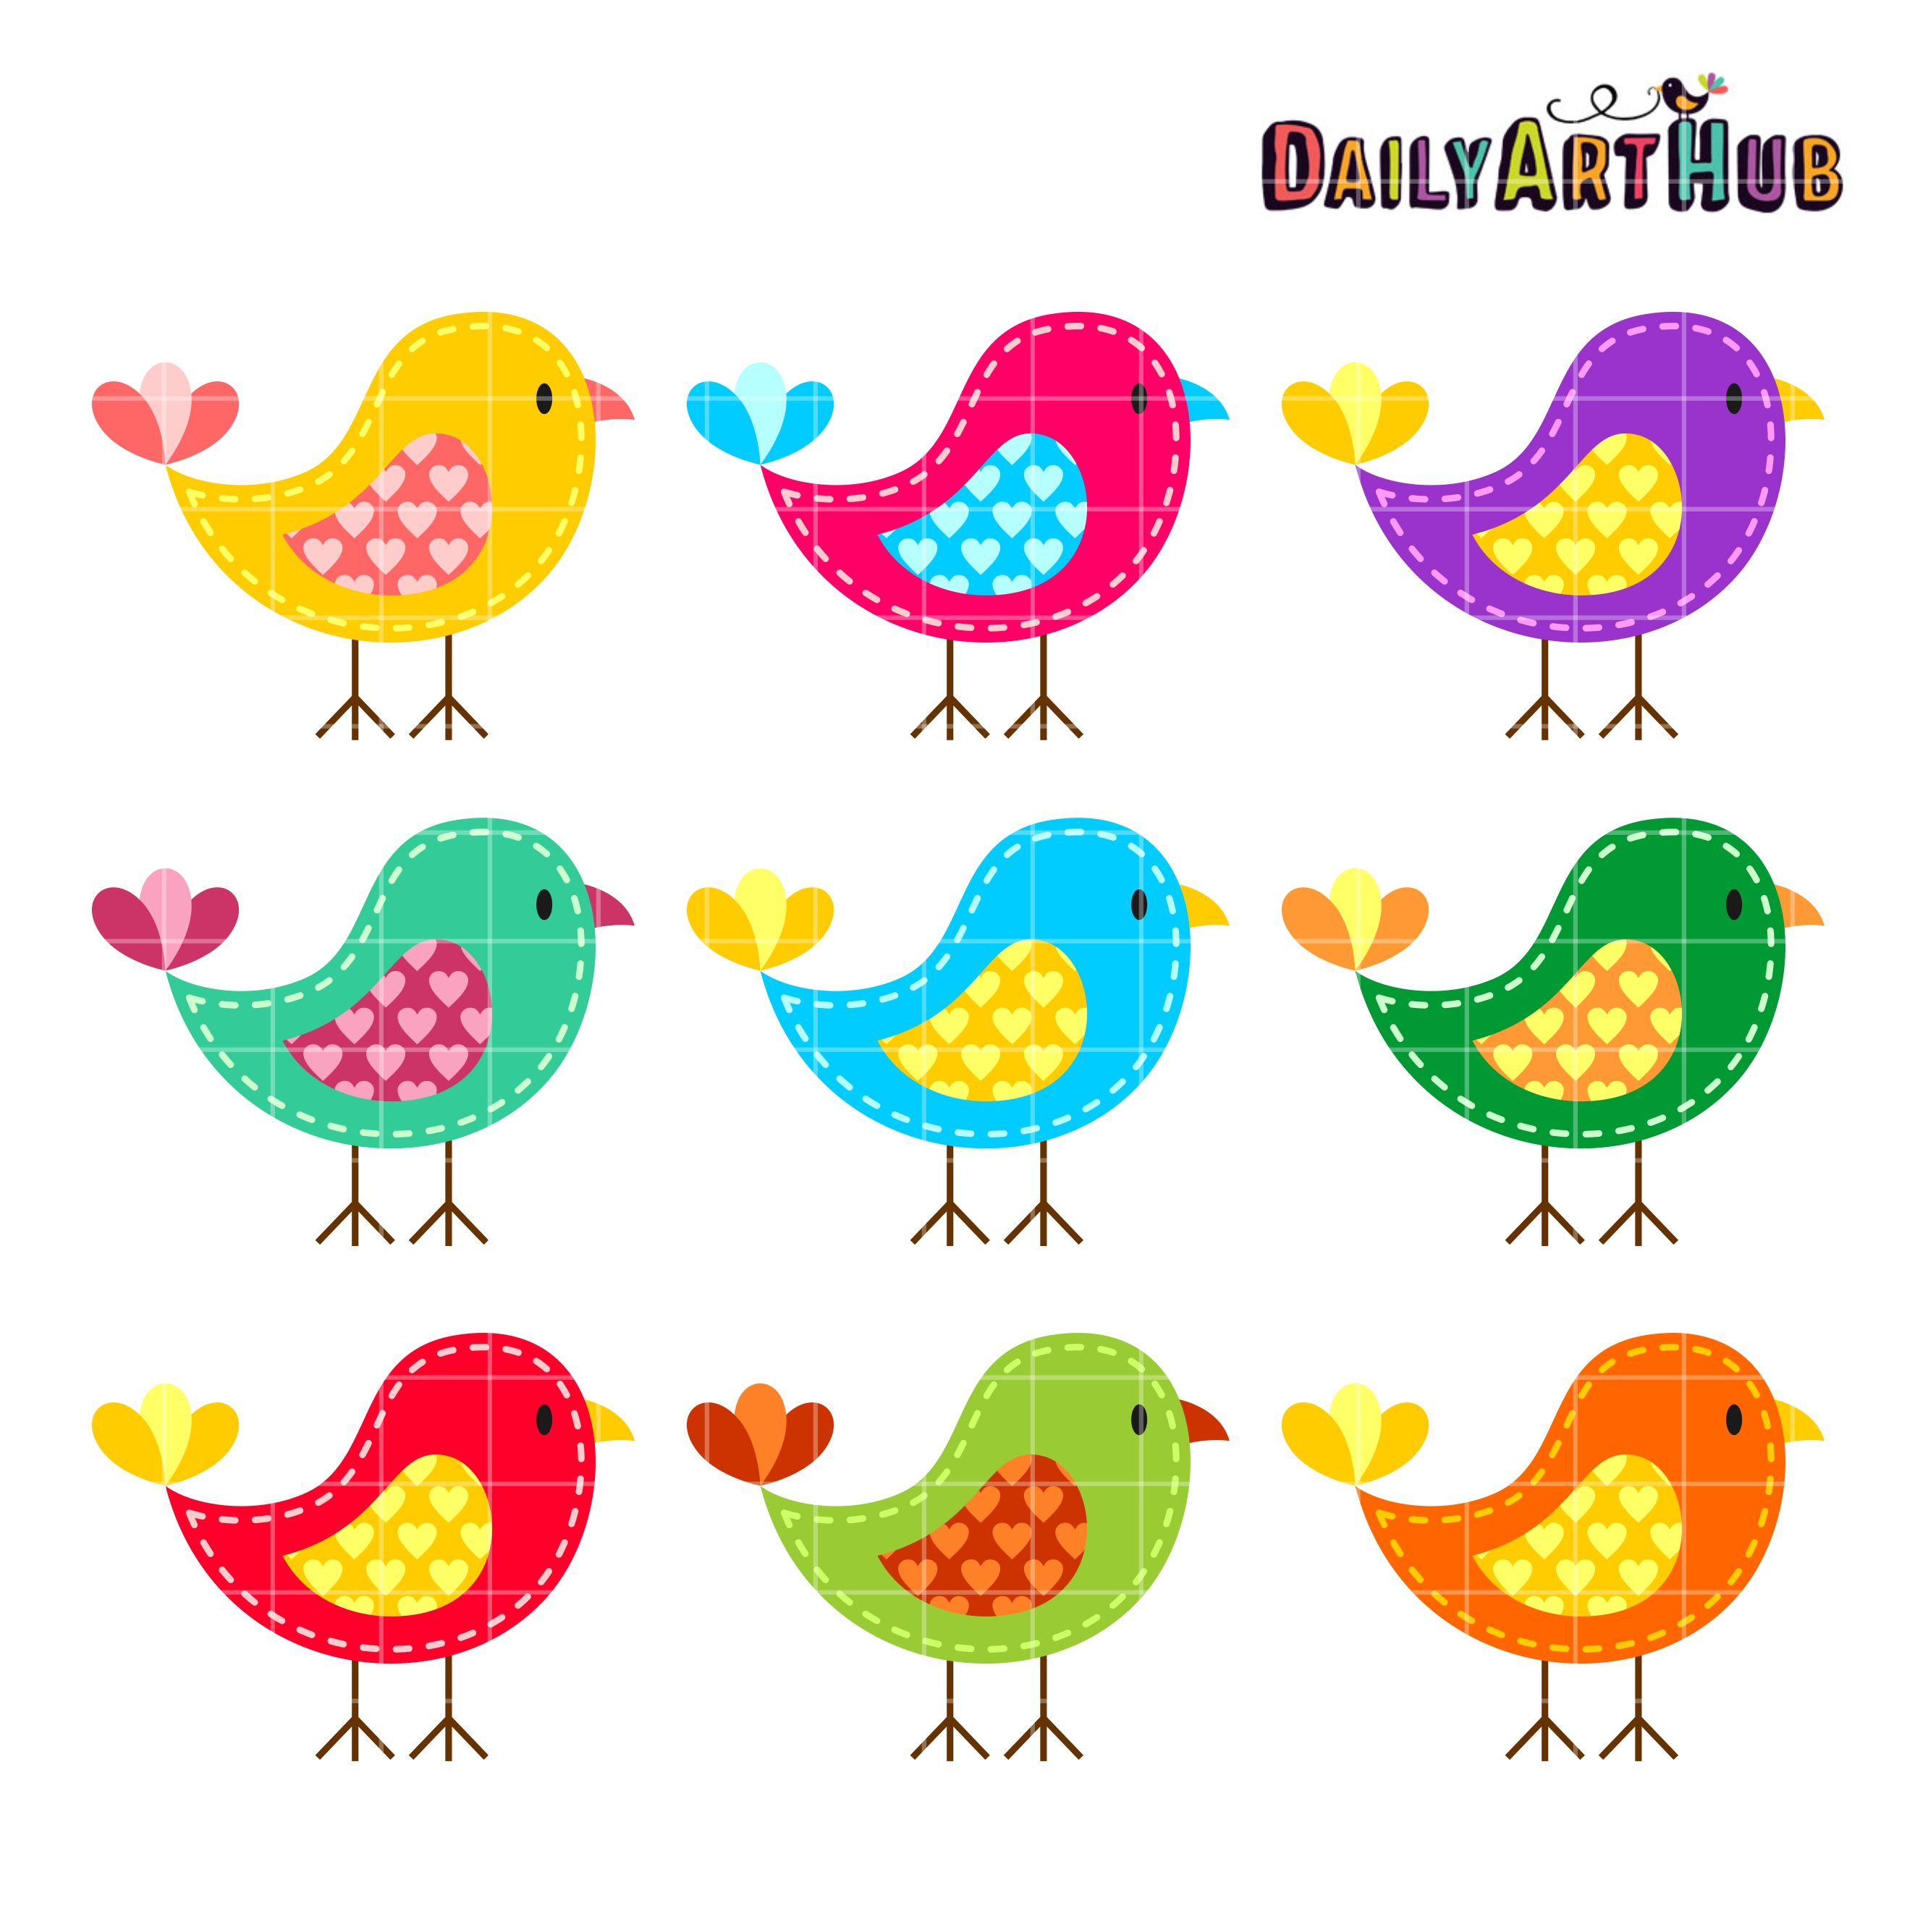 colorful birds clip art set daily art hub free clip art everyday rh dailyarthub com birds clipart images bird clipart silhouette